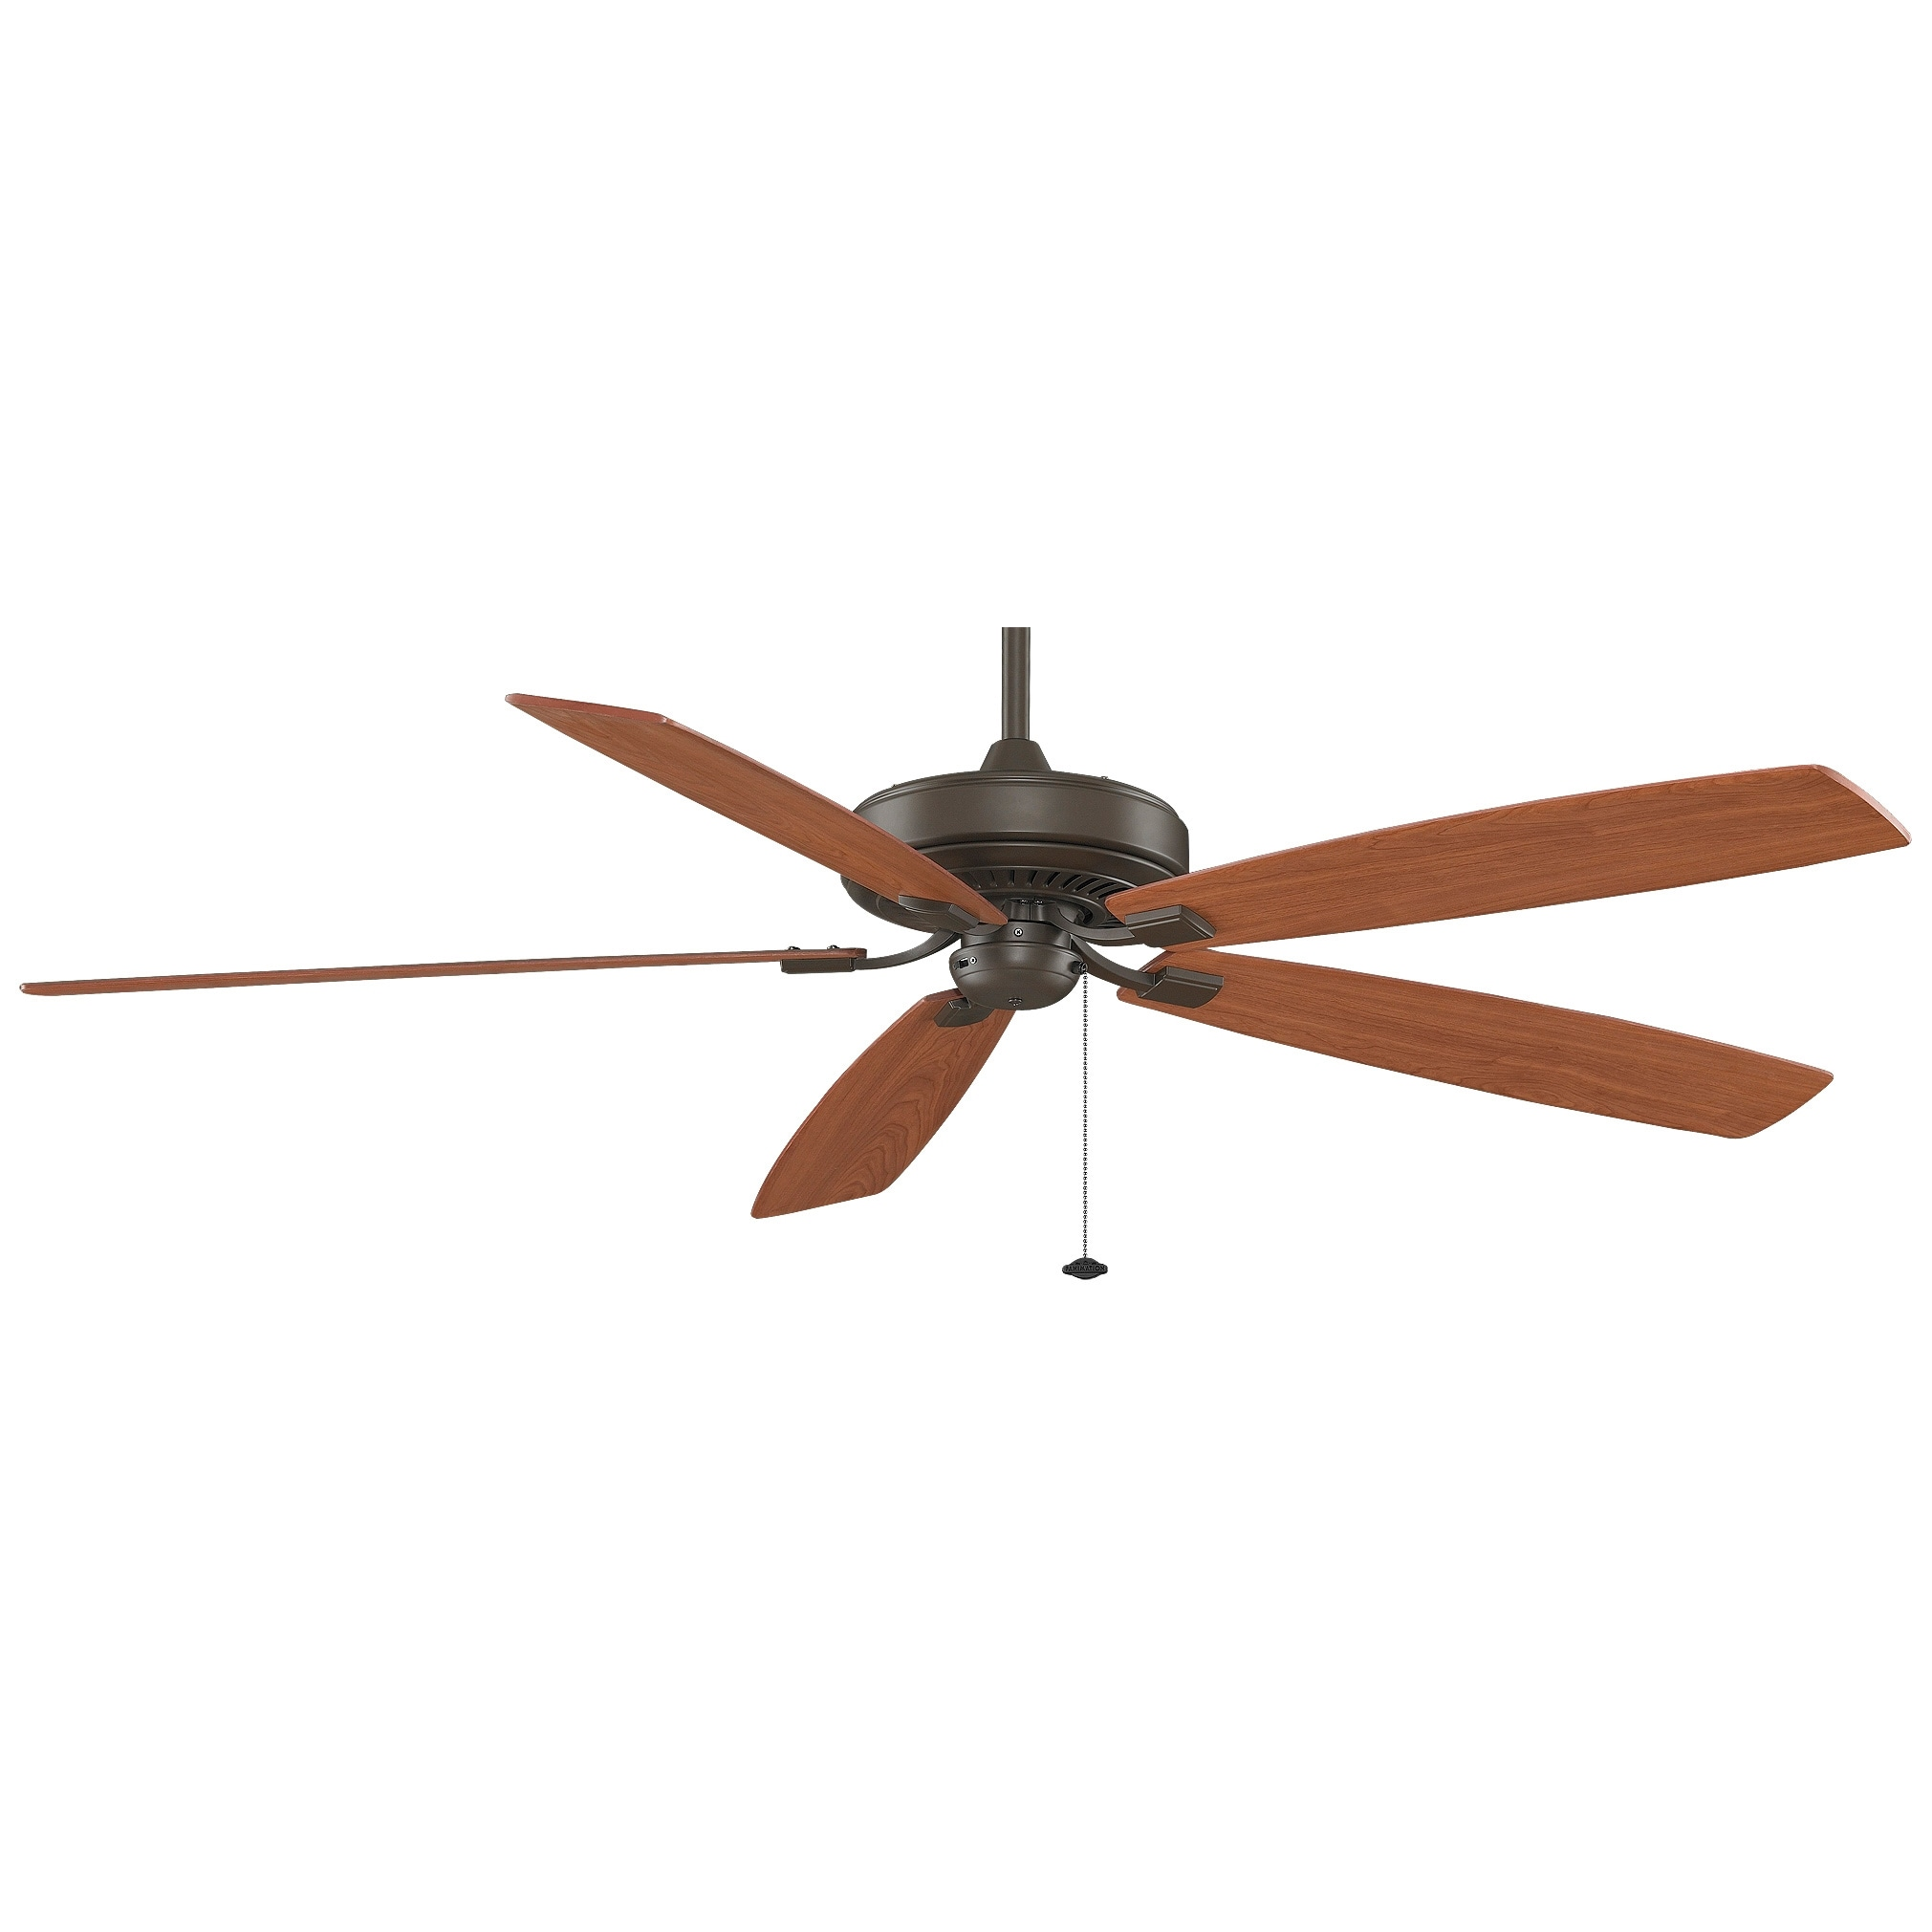 garden fan home ceiling subtle product shipping free ceilings overstock inch today fans led with